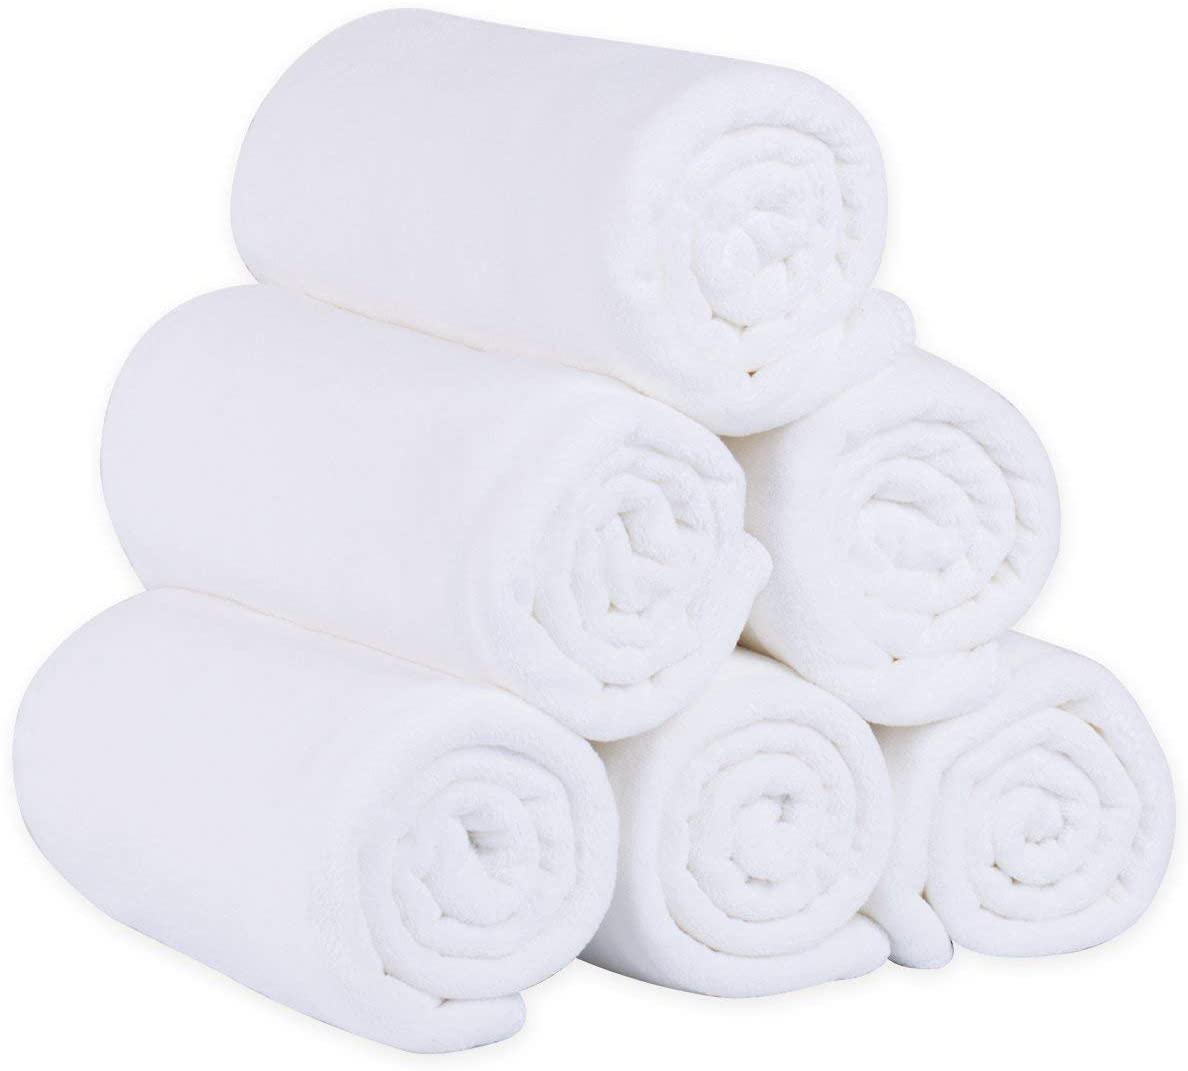 White Hand Towel 18x30 180g  (Pack of 12 Units)